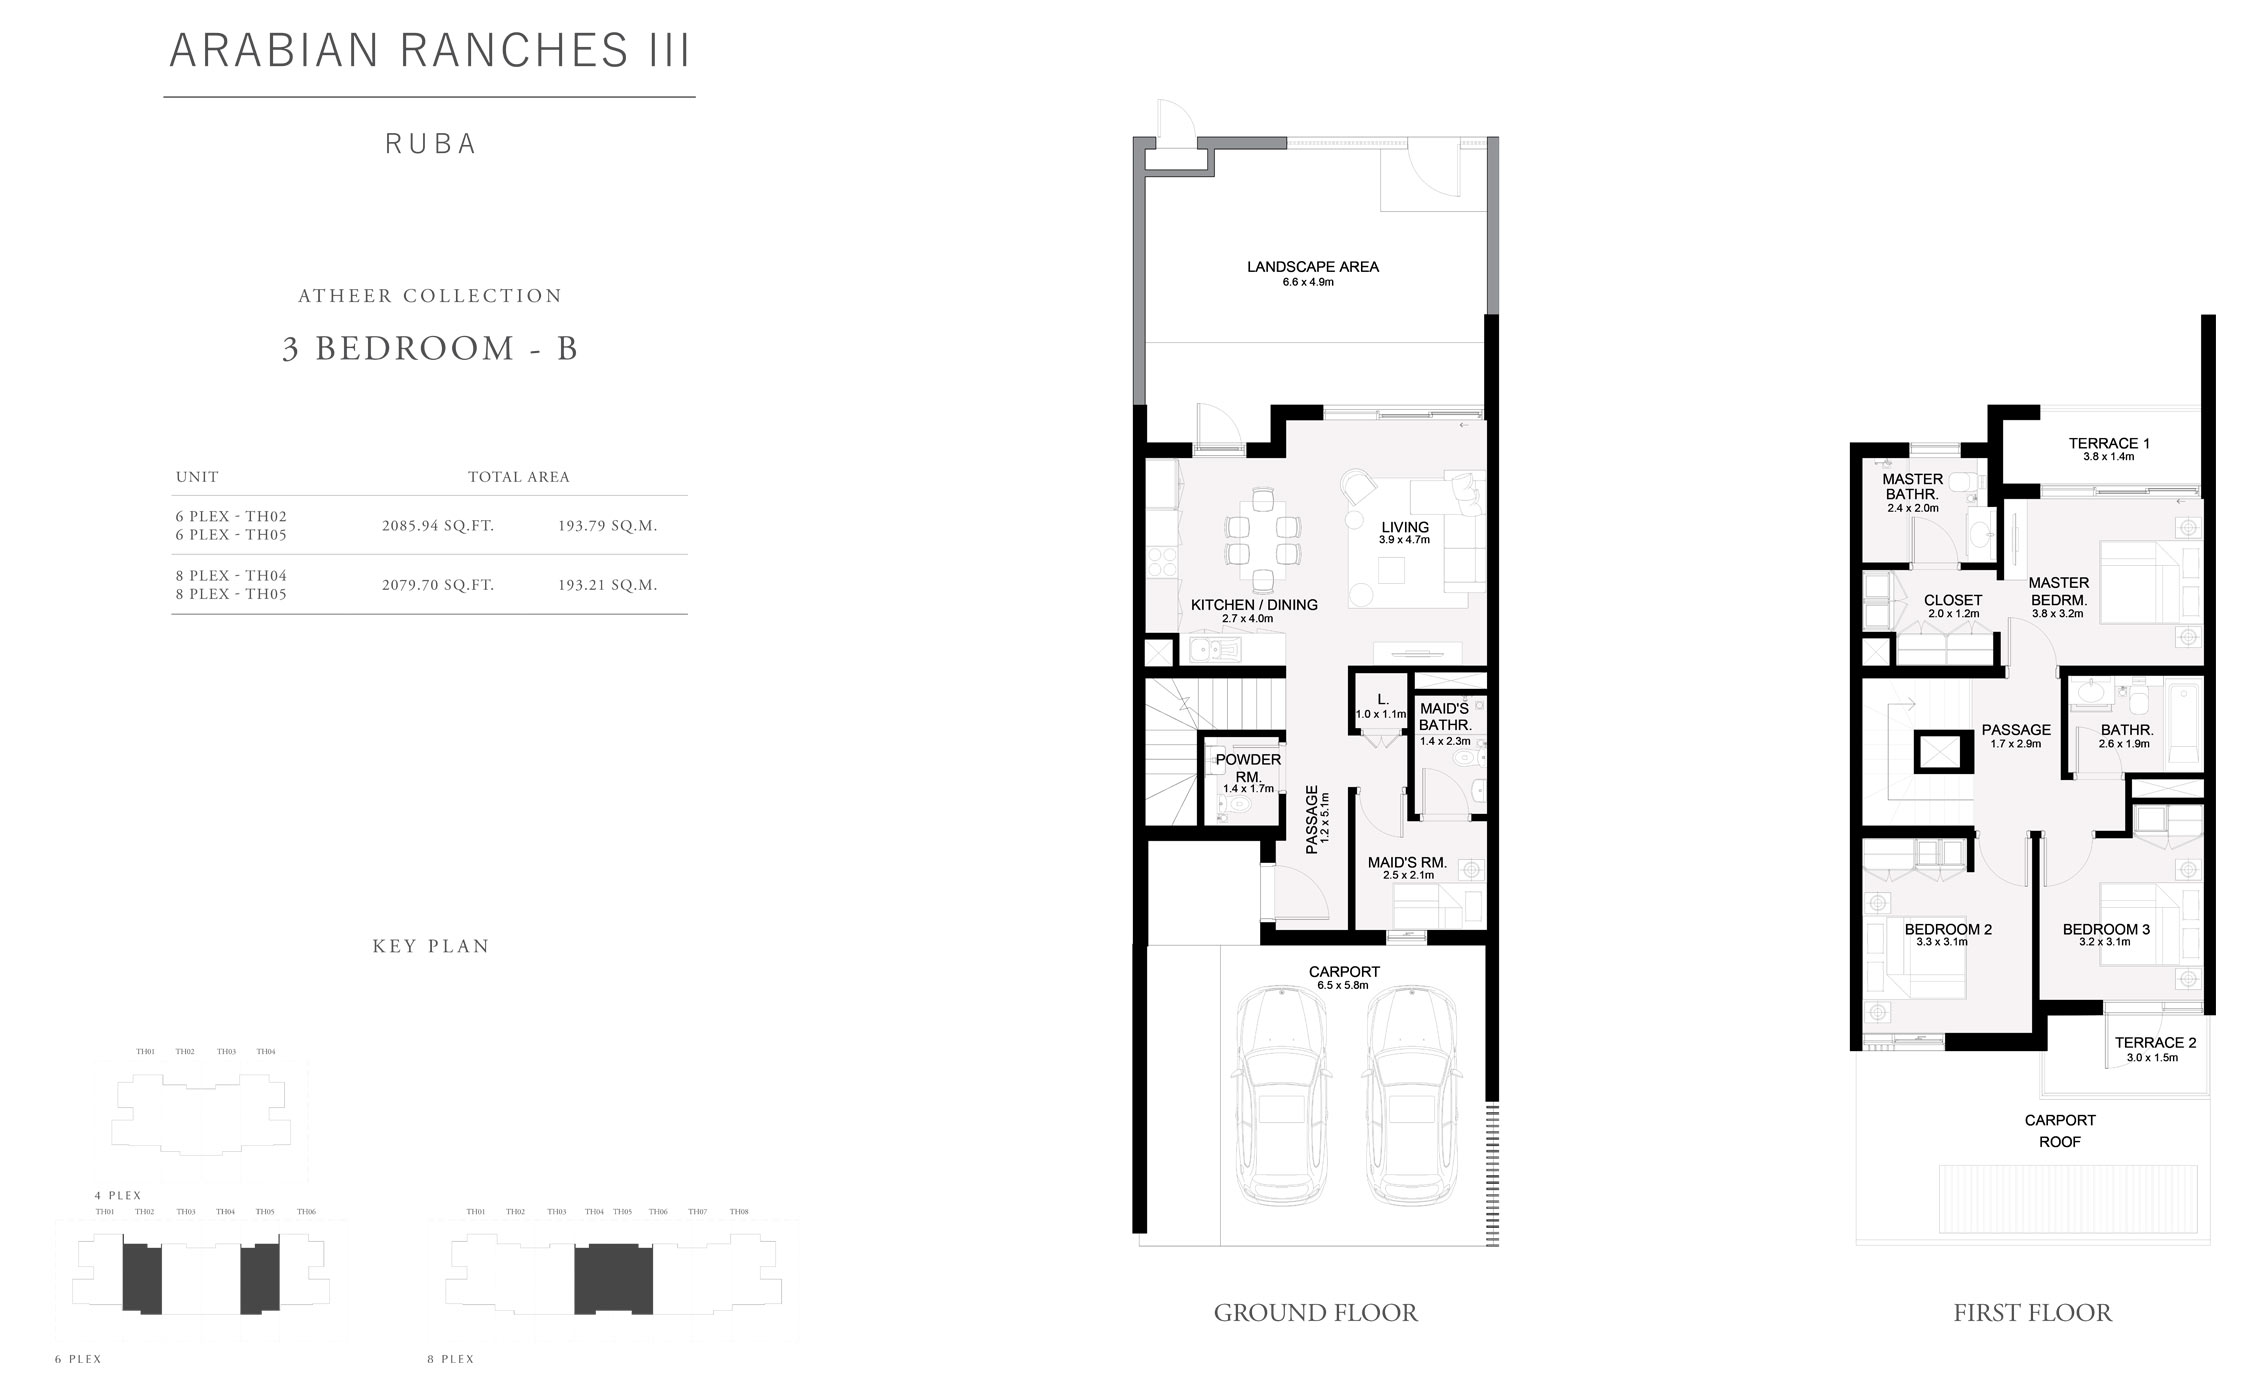 Atheer Collection 3 Bedroom B, Size 2079 Sq Ft